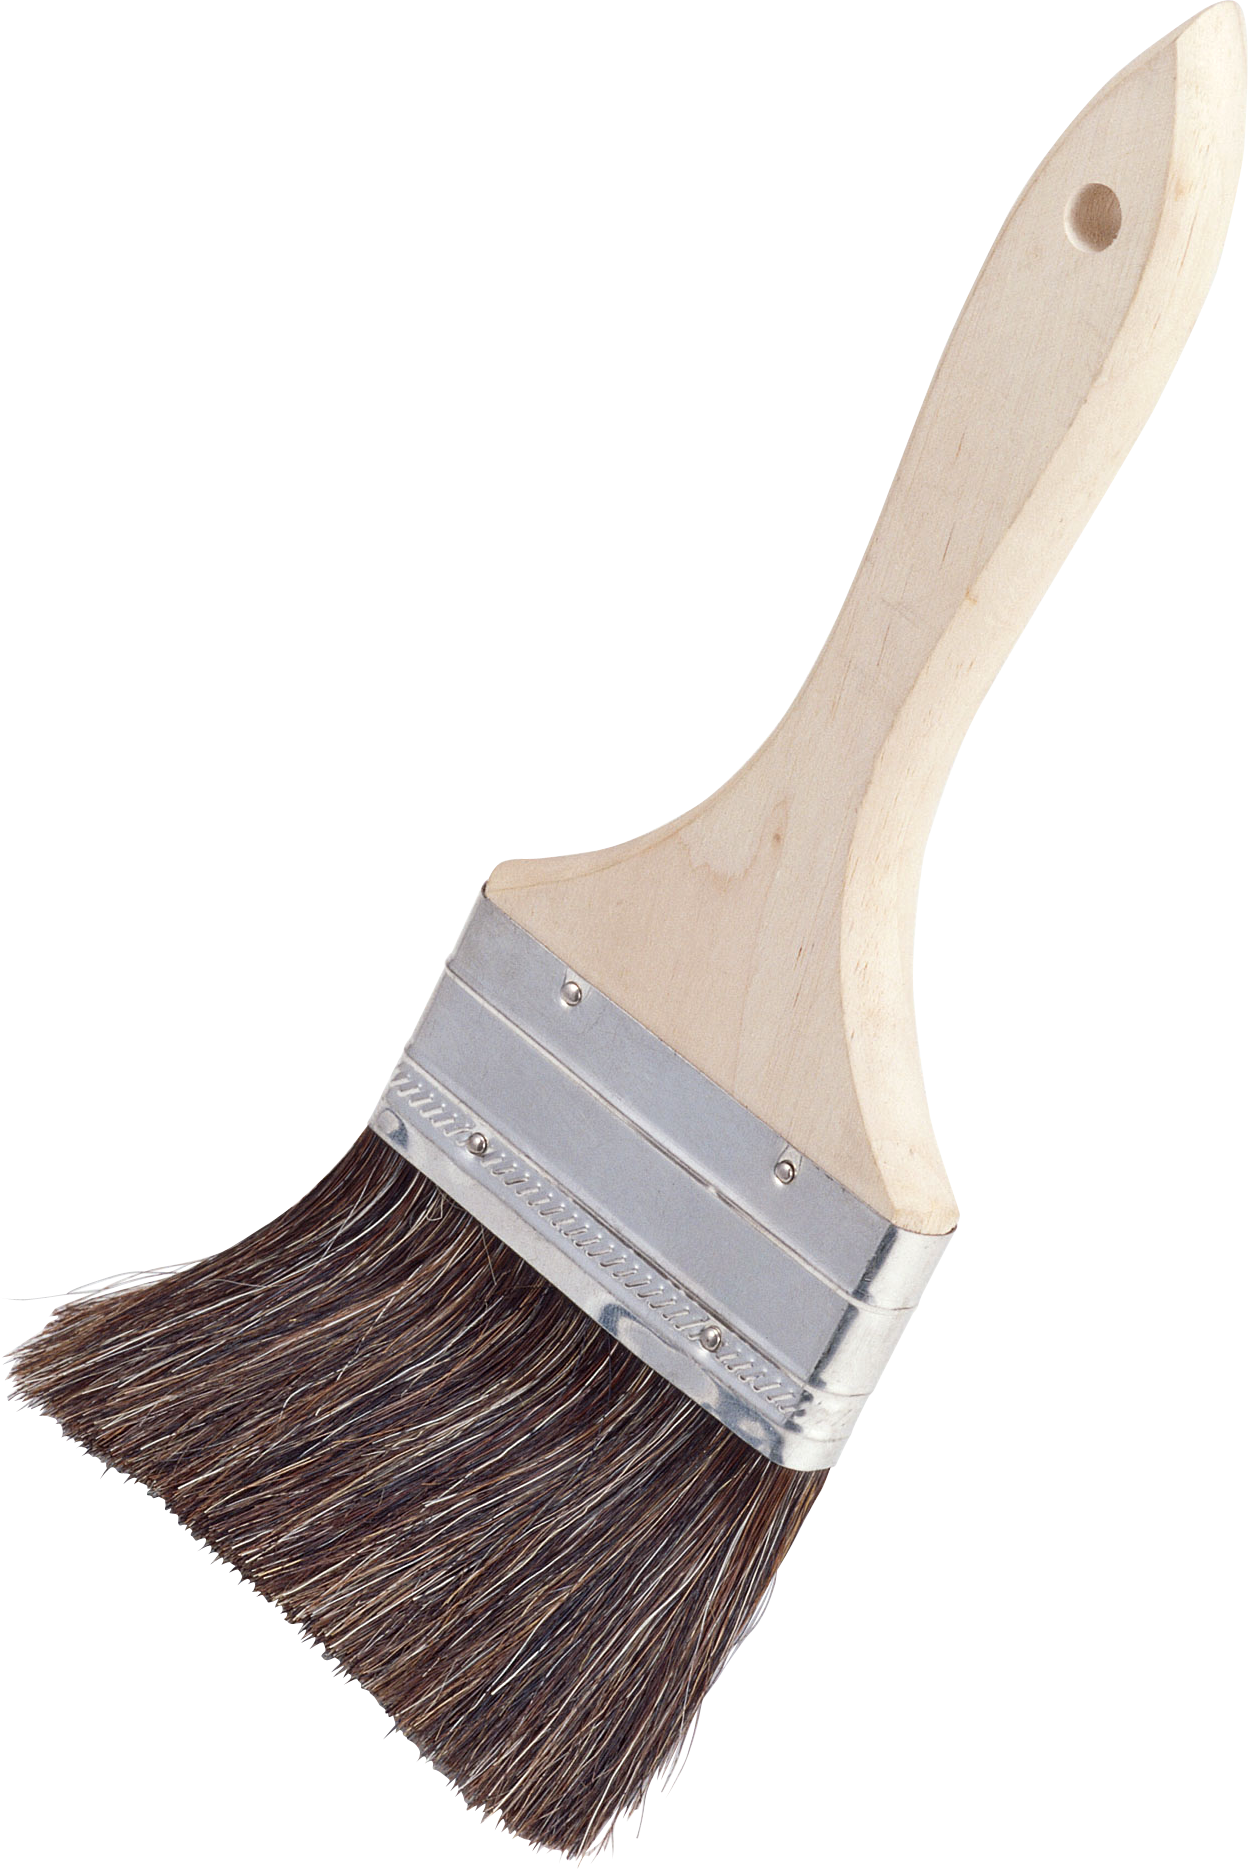 Paintbrush png transparent. Paint brush image purepng